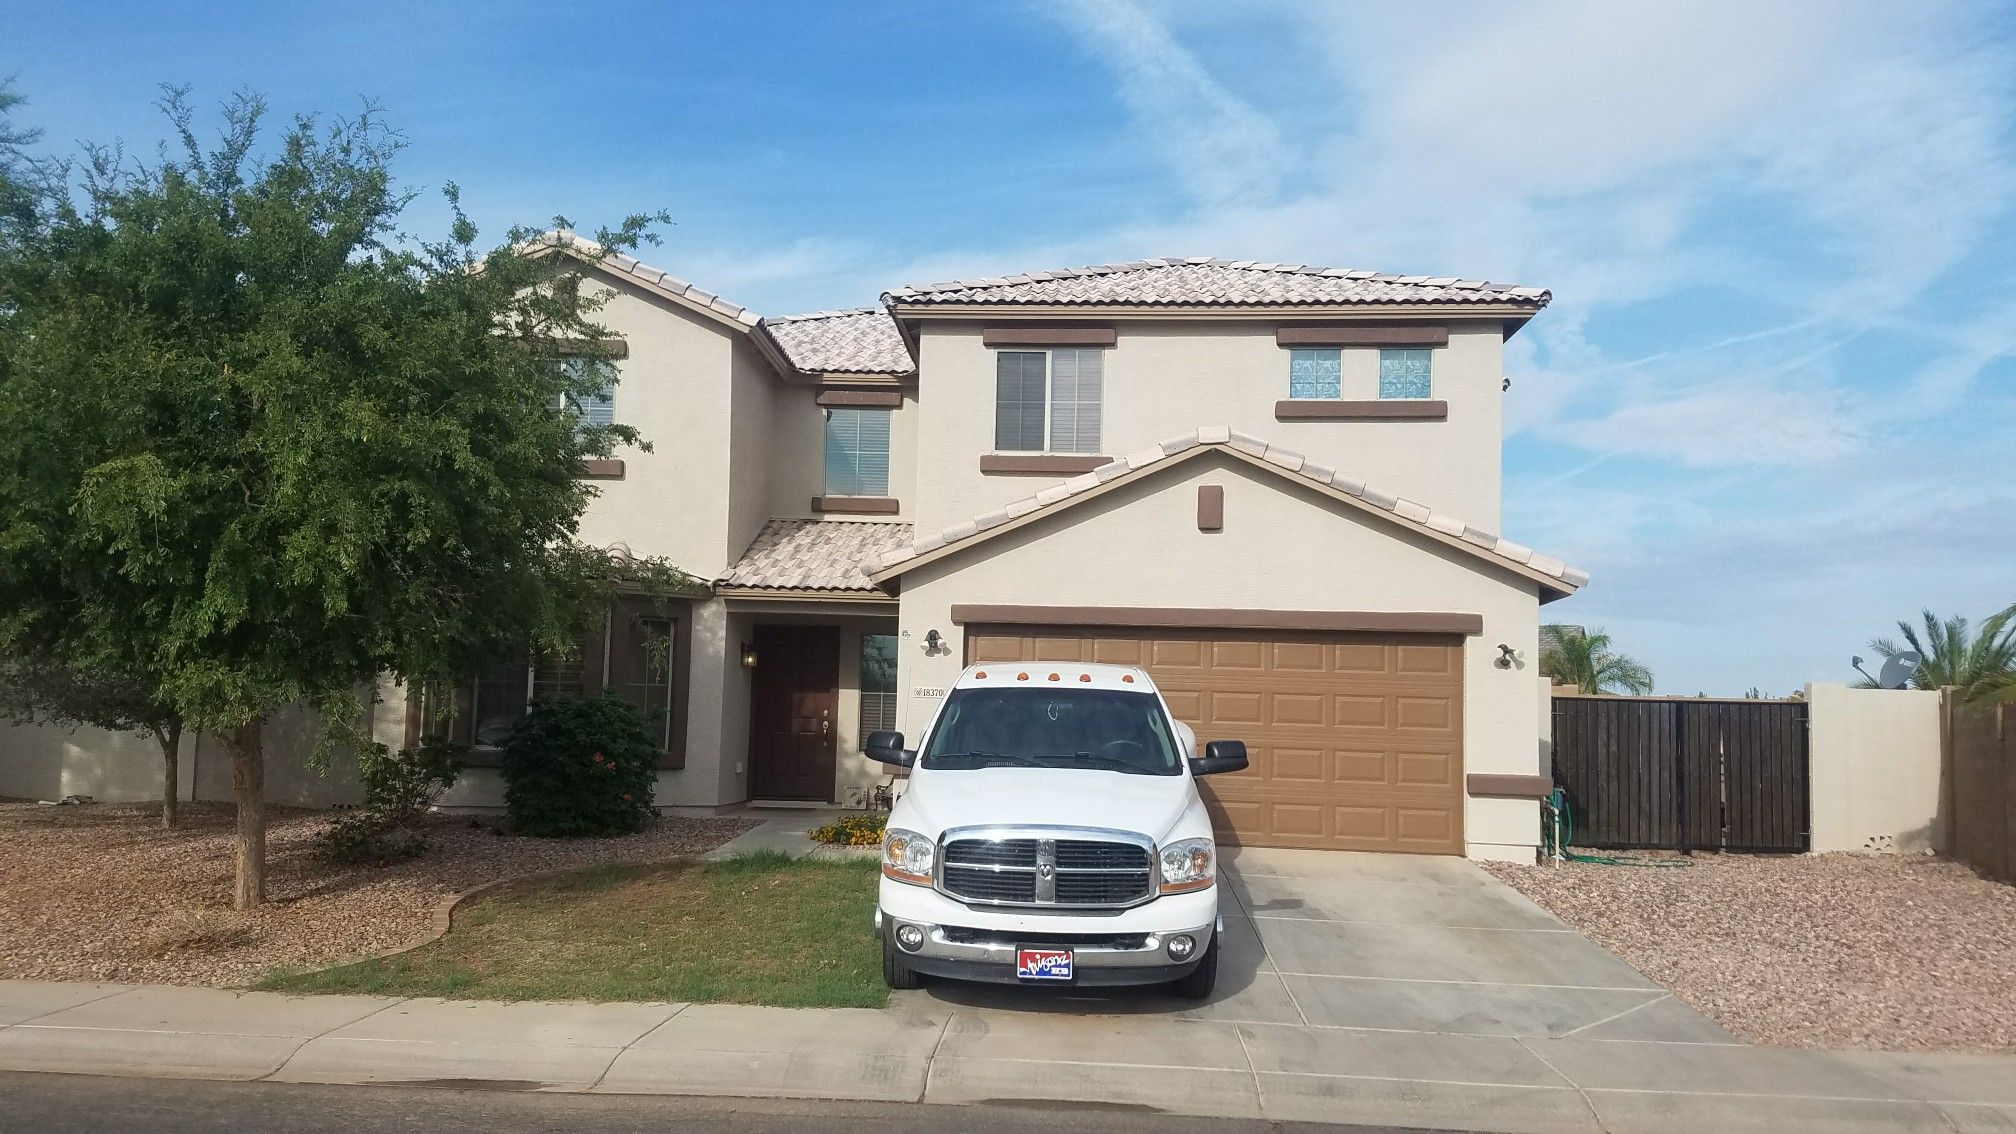 4 Bed 2 5 Bath 2200 Sq Ft Home In Maricopa Az Ready For New Owners Call Me Today For More Info 5204859789 Real Estate Tips Real Estate Outdoor Structures